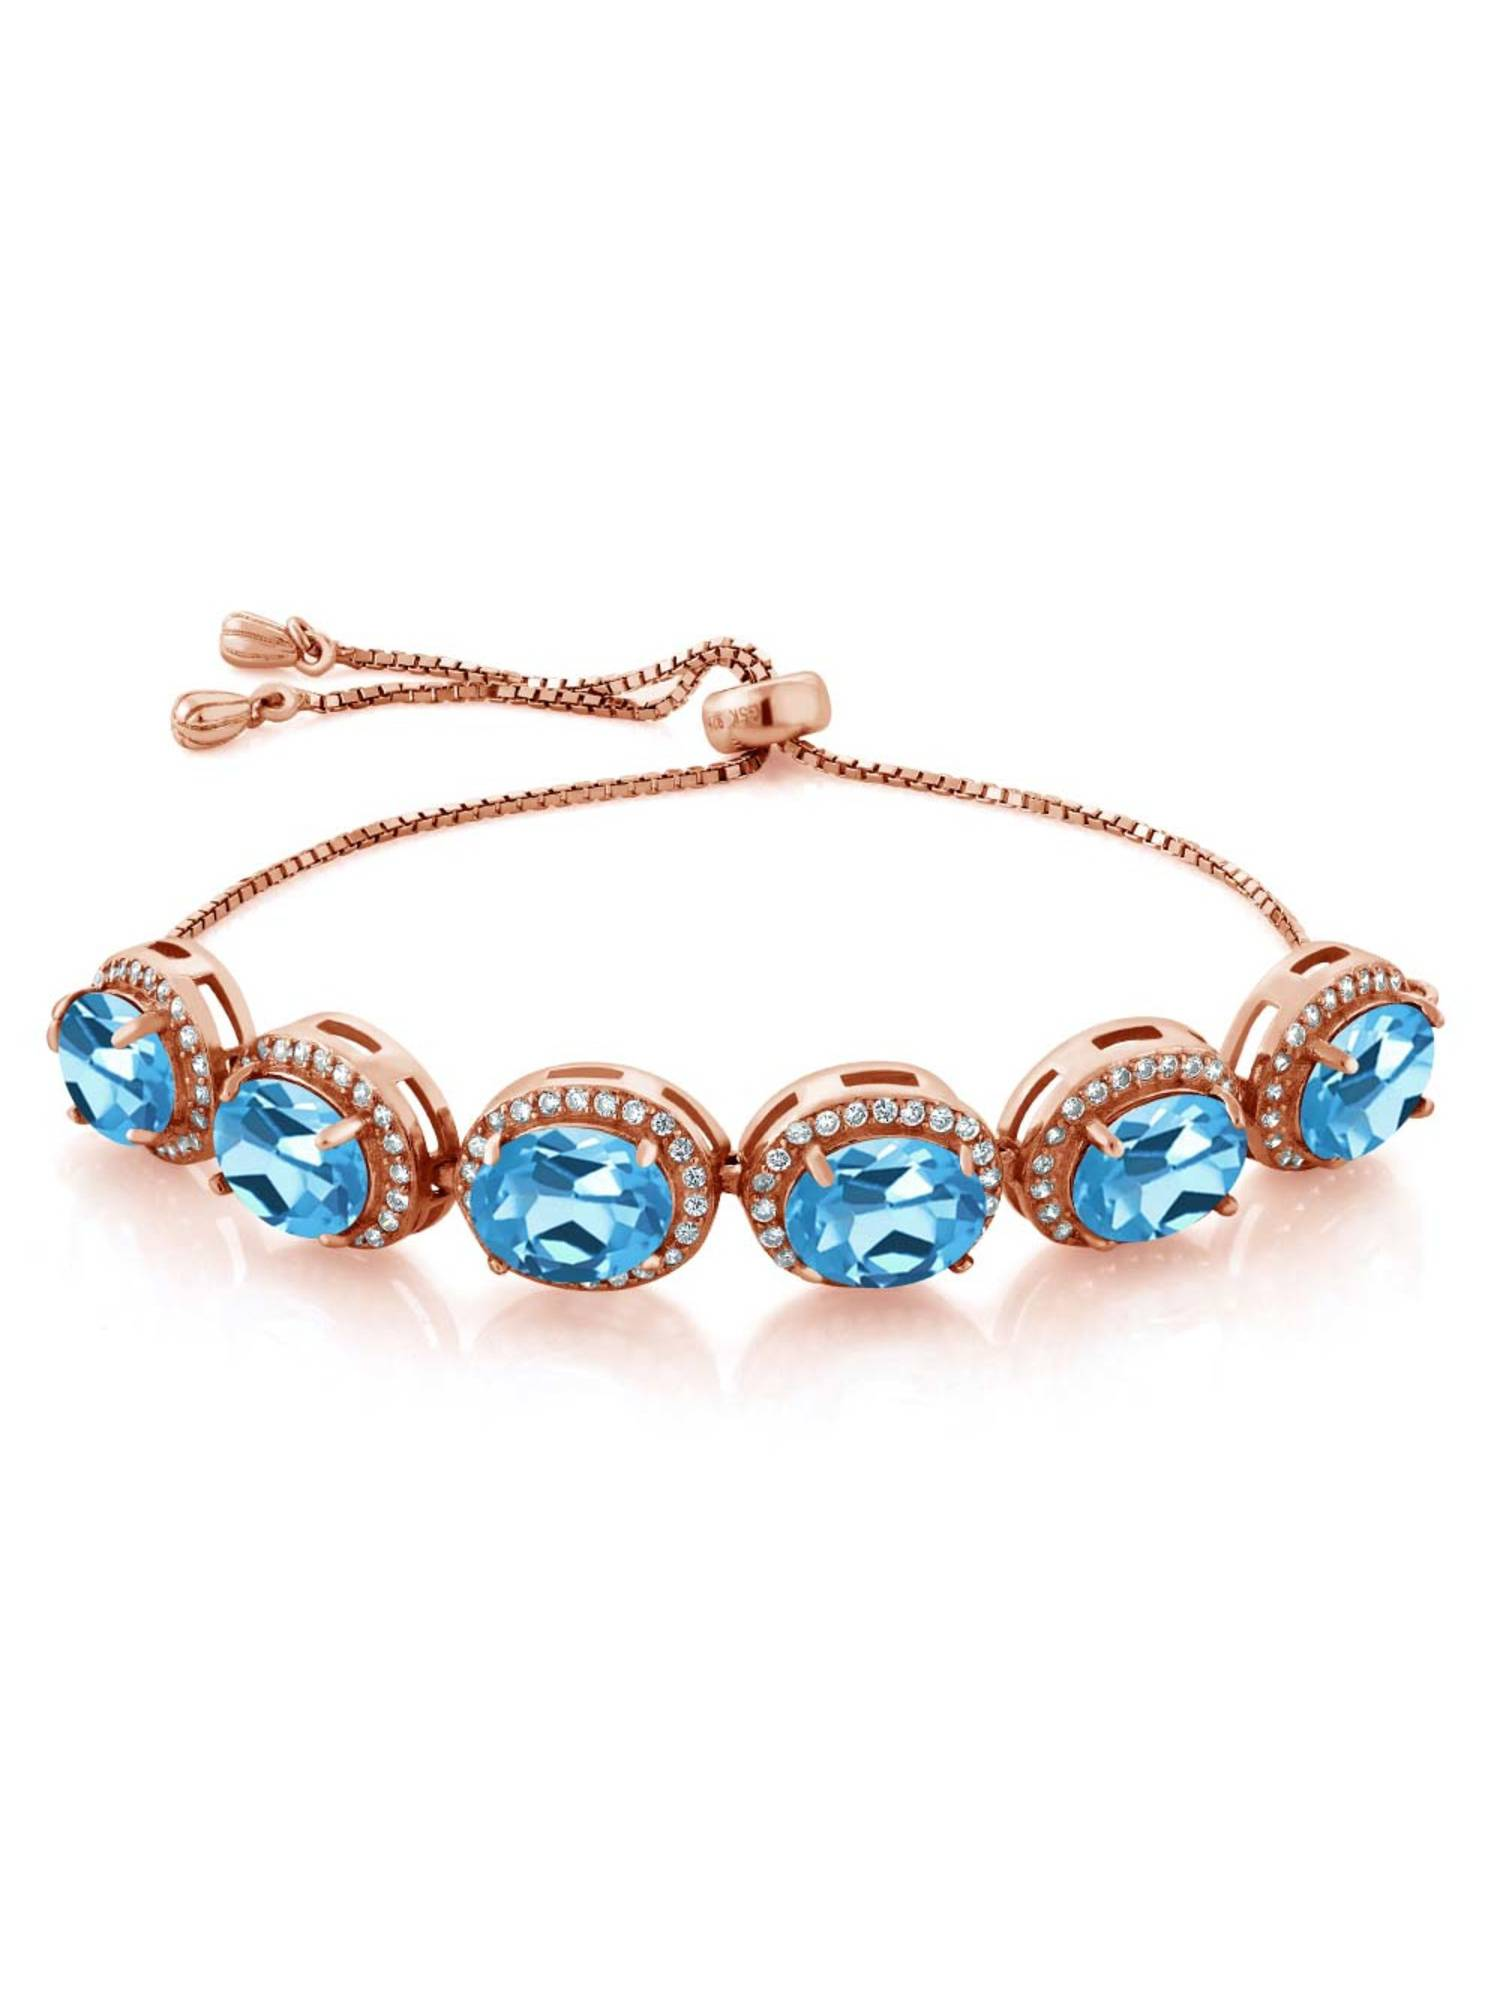 12.38 Ct Oval Swiss Blue Topaz 18K Rose Gold Plated Silver Bracelet by